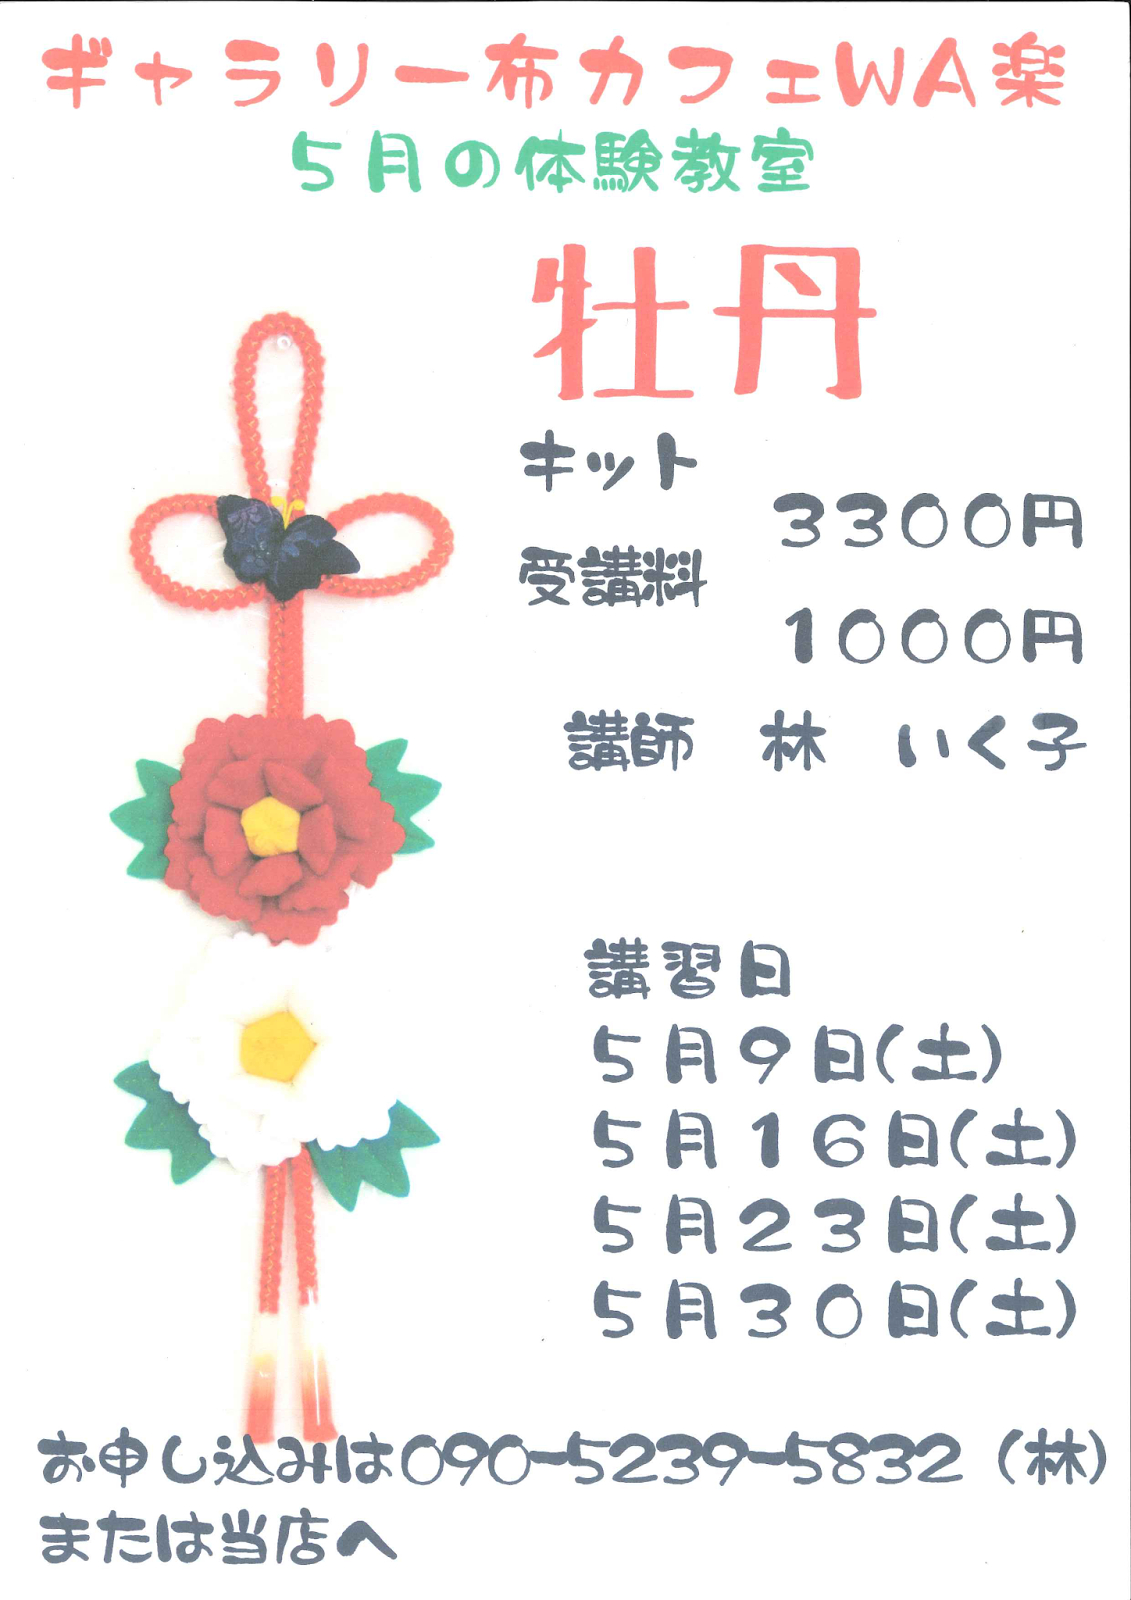 Towada Gallery & Cafe WARAKU May Handicrafts Trial Class 十和田市 ギャラリー布カフェWA楽 5月体験教室